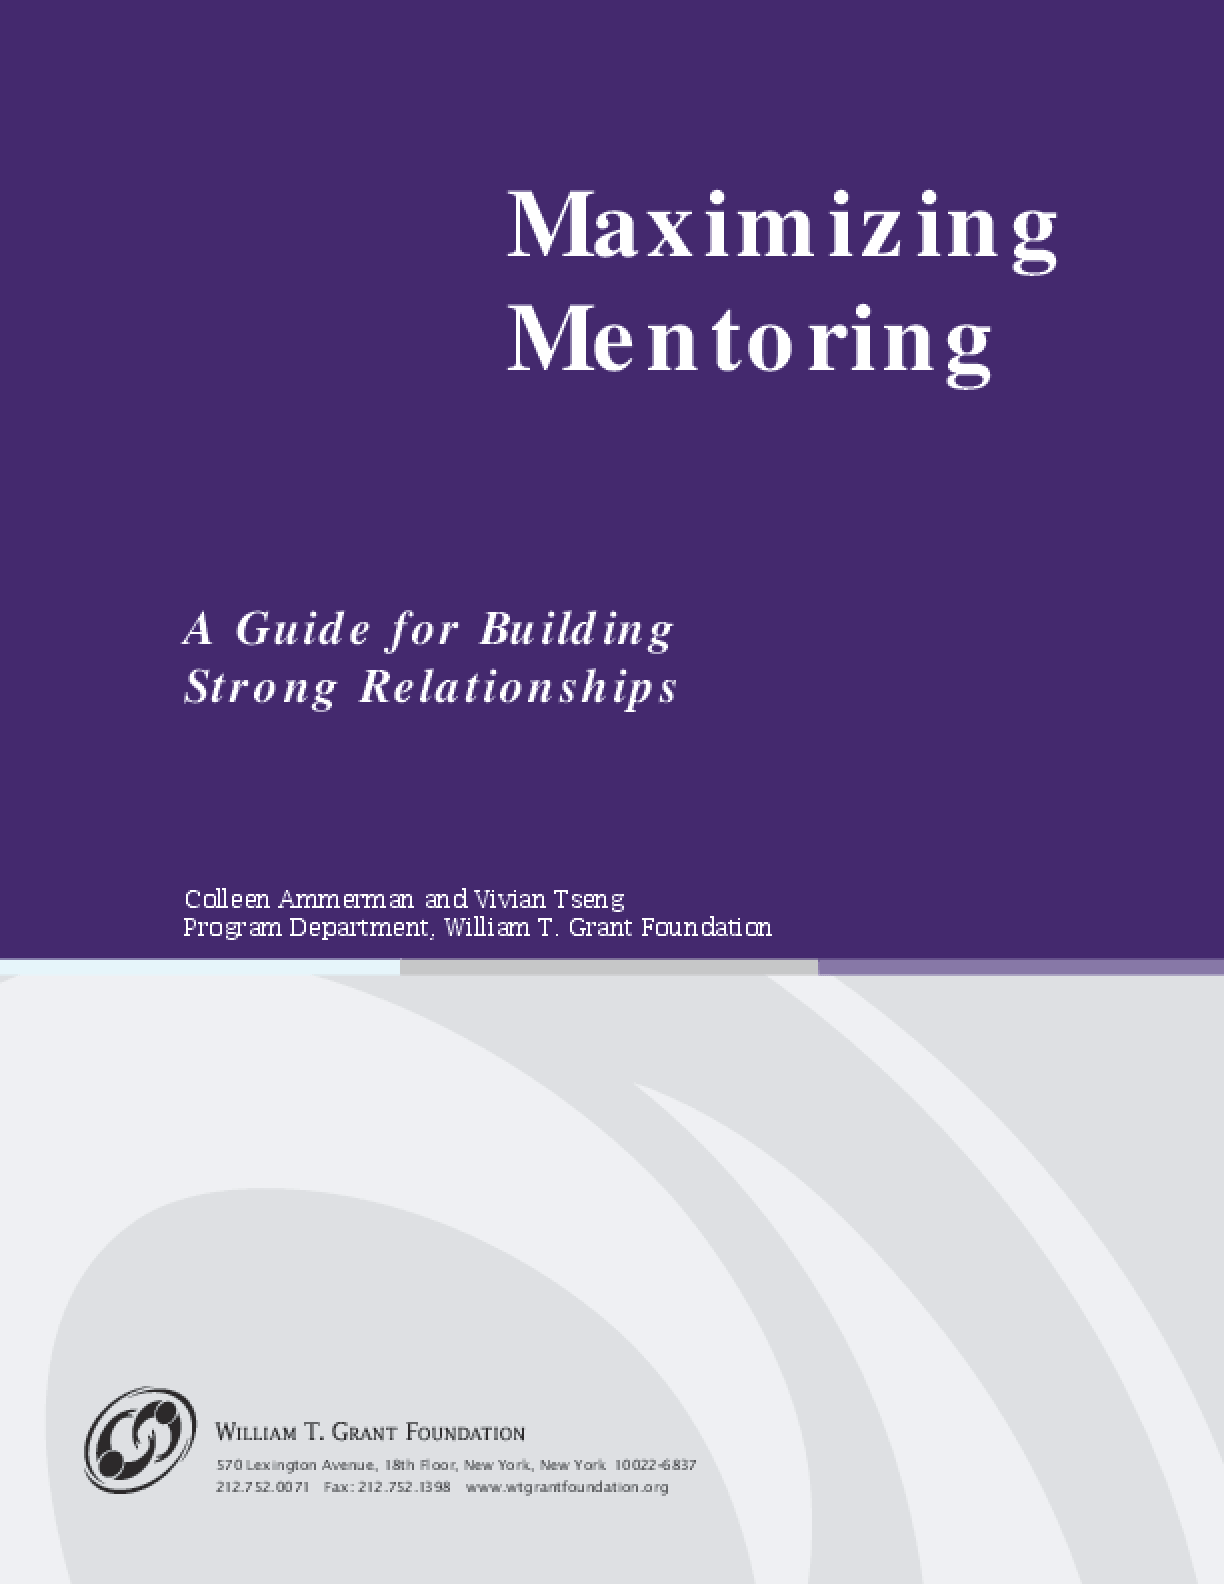 Maximizing Mentoring: A Guide for Building Strong Relationships